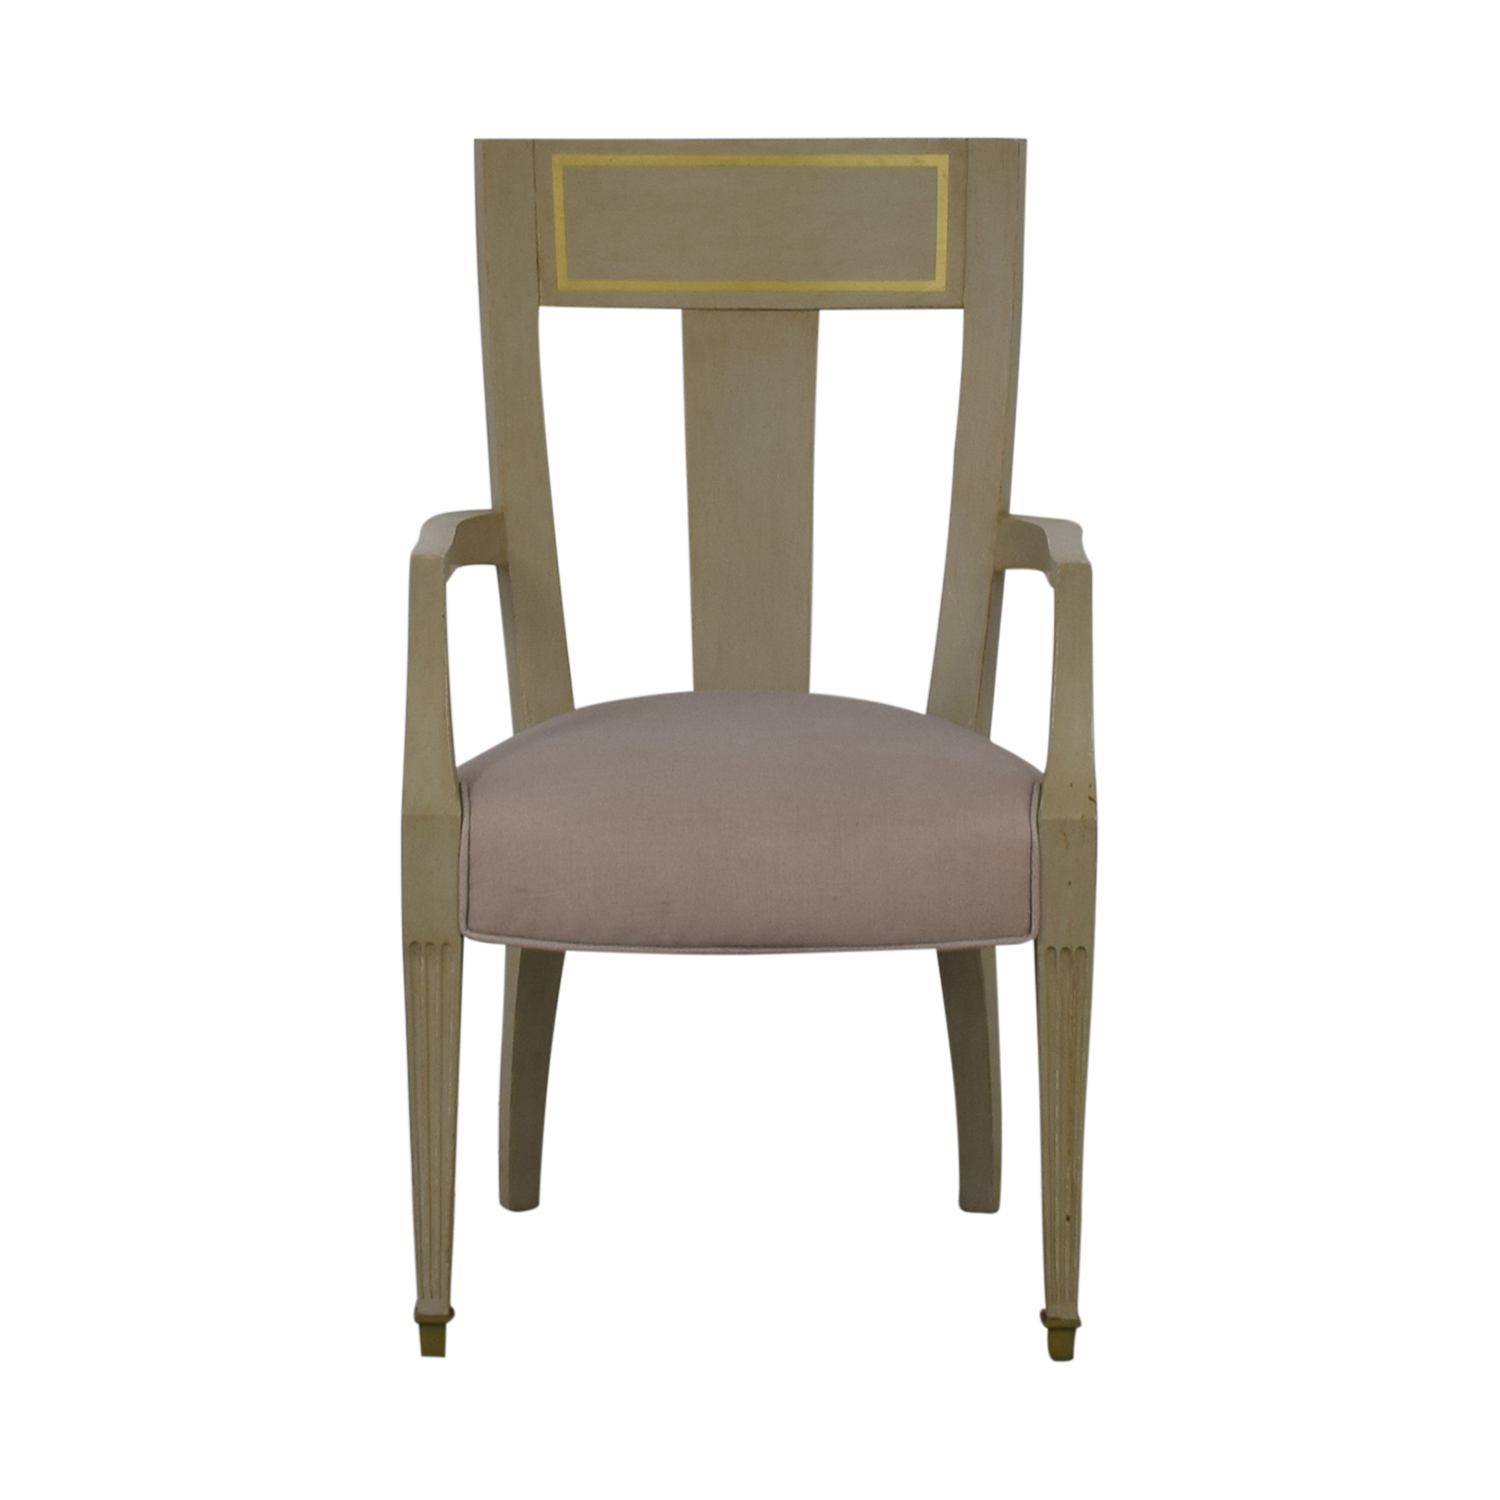 Gray and Gold Arm Accent Chair for sale